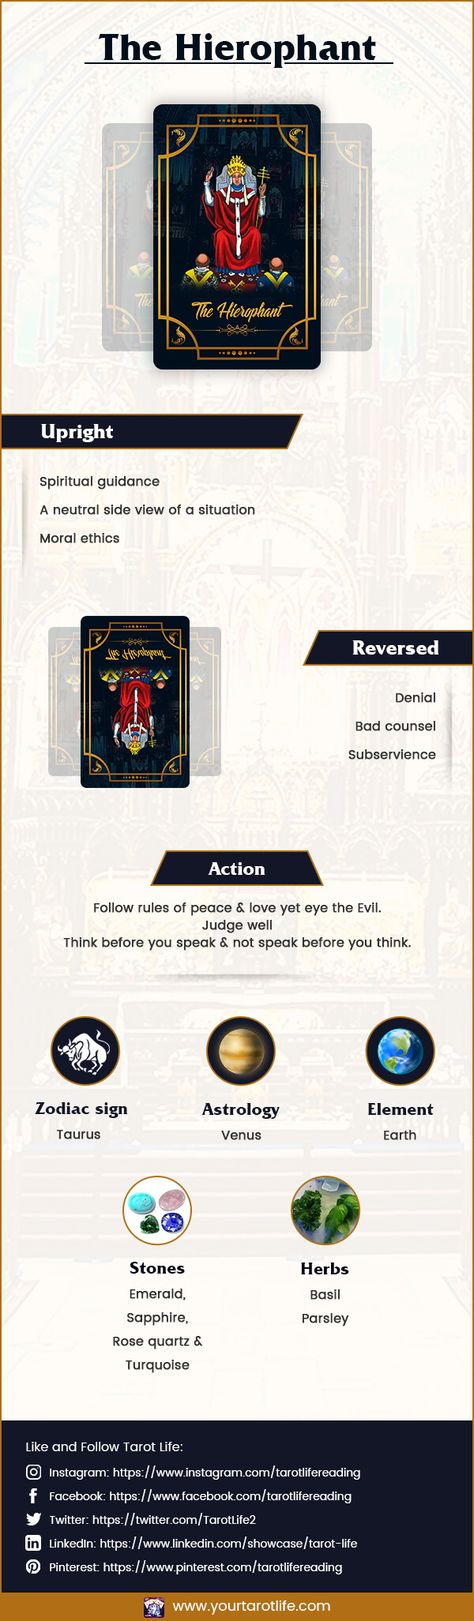 Hierophant Tarot card gives you the much-needed advice when you need it the most. Do you want to explore more? Read on further! #hierophant , #thehierophant , #tarotcards , #hierophantreversed , #hierophantupright , #tarotcardsmeaning , #majorarcana, #education